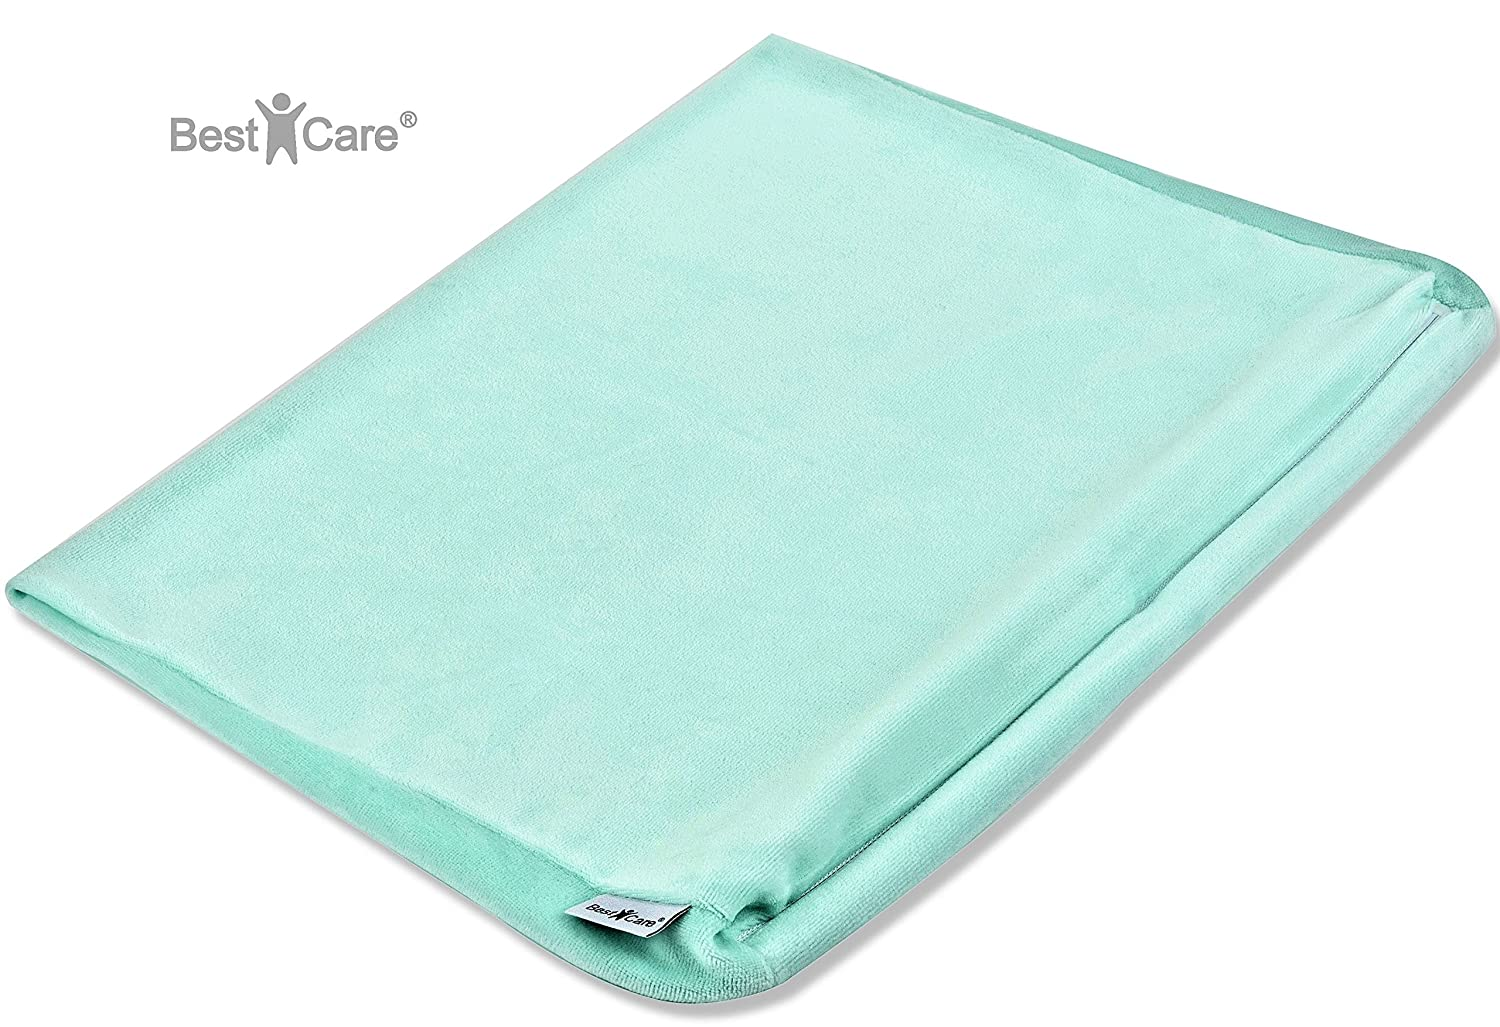 BestCare - Made in The EU, Cover for Baby Pillow, fits Many Common Models - in Four Sizes and Two Colors, Pillow Cover for Wedge Pillow, Anti-Reflux Pillow, Pillowcase:Mint, Size:70x36 cm (Maxi)